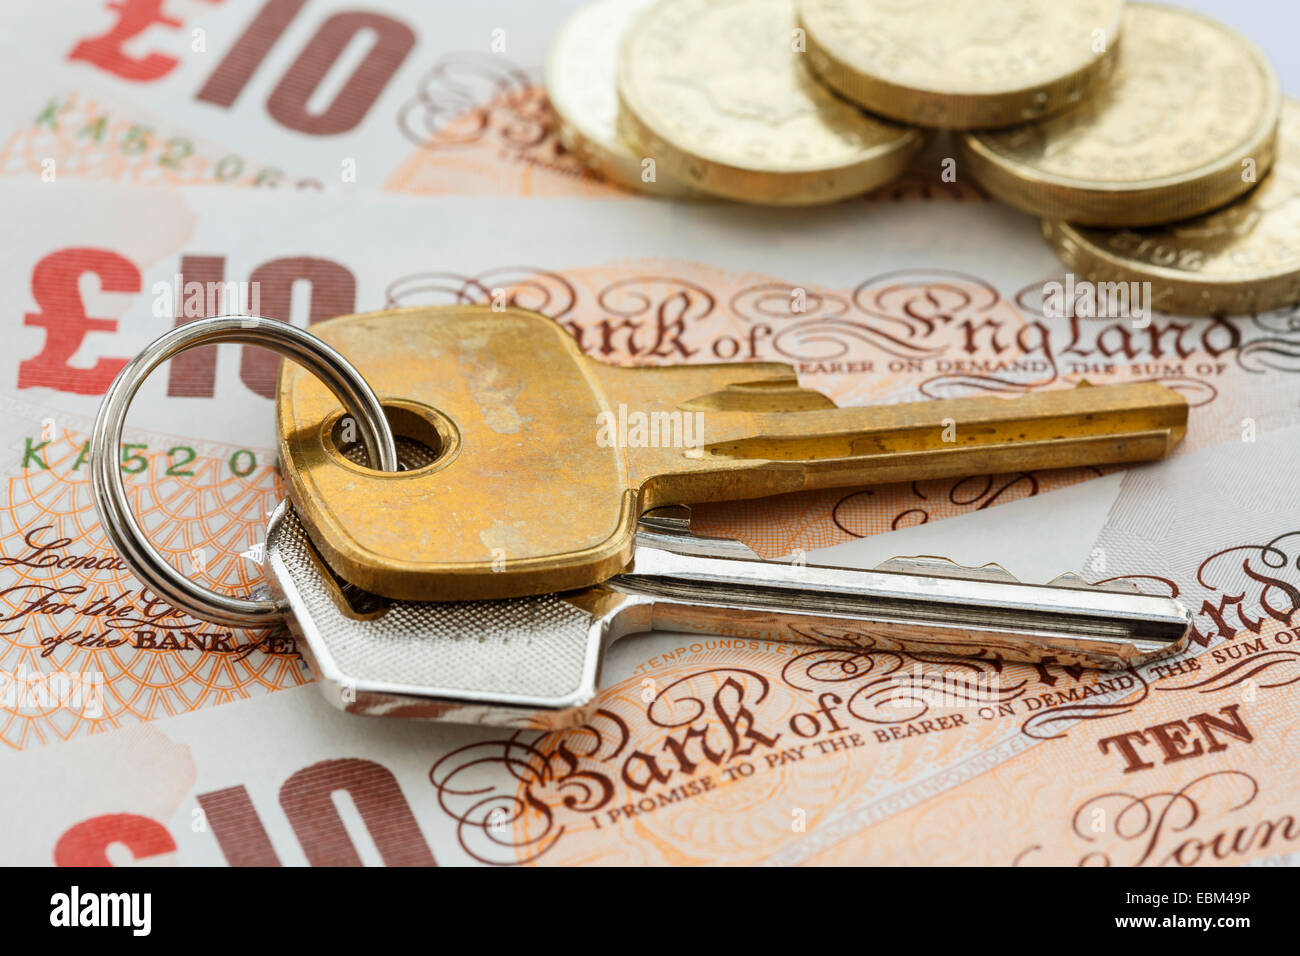 House keys on money sterling notes GBP with pound coins to illustrate UK property prices values mortgage costs concept. - Stock Image